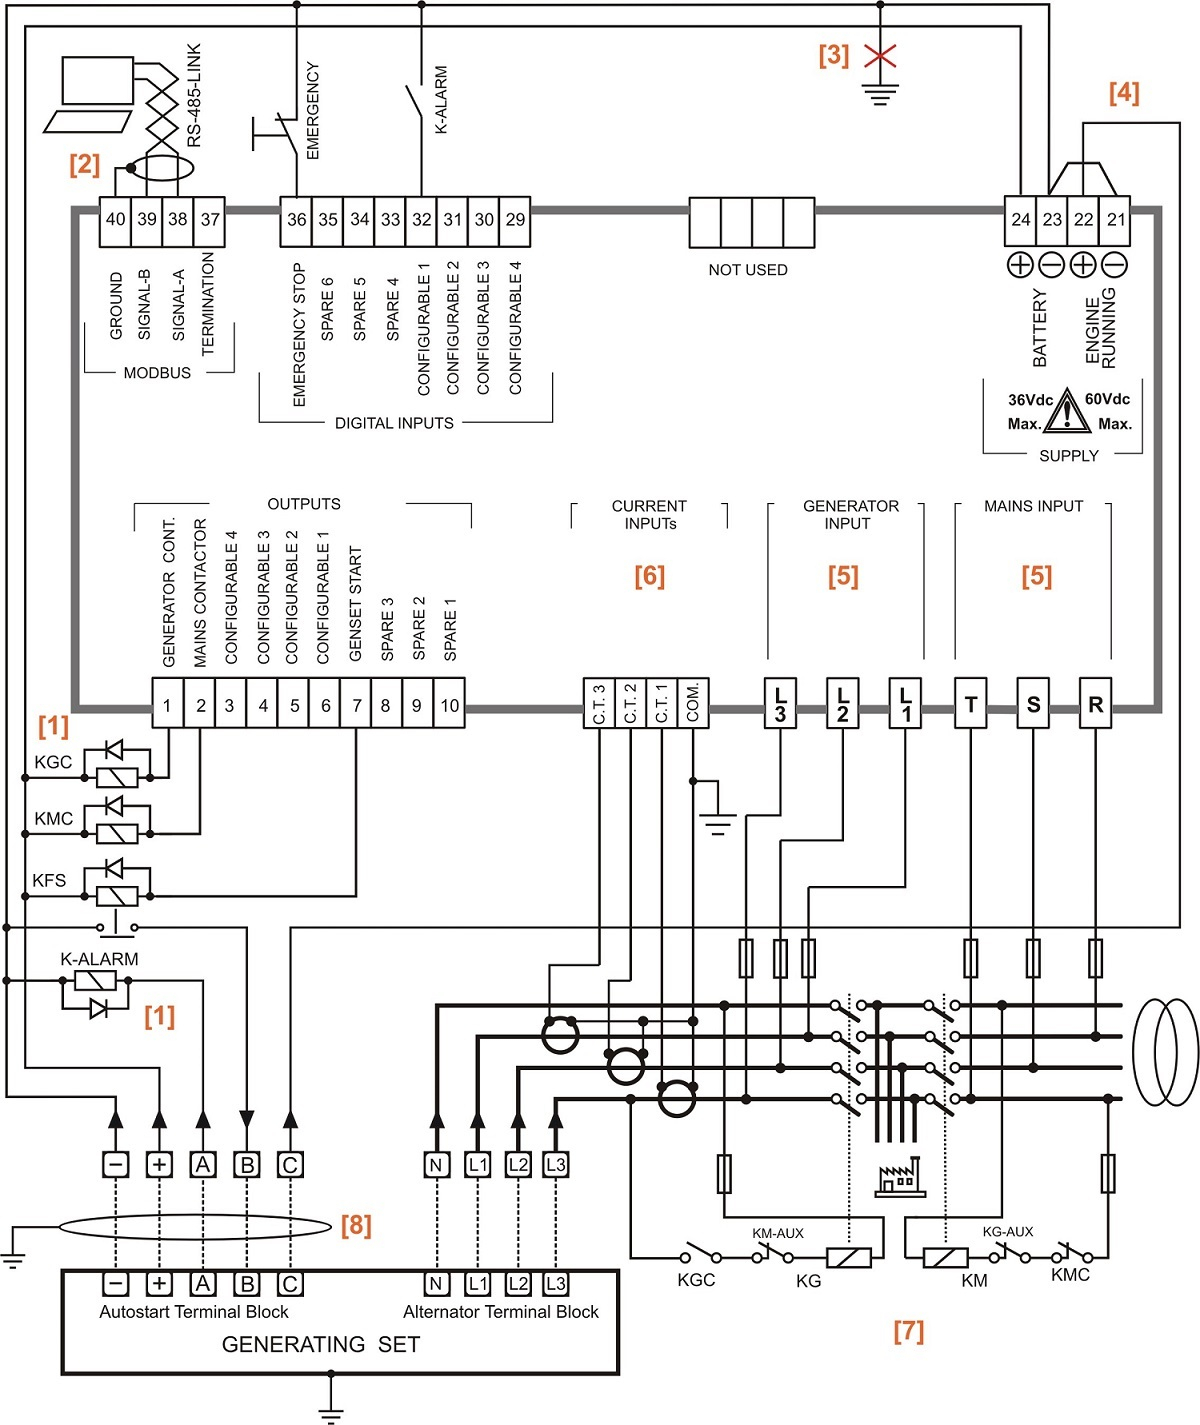 Generac Generator Auto Start Wiring Diagram Guide And Schematic Automatic Transfer Switch Diagrams Detailed Rh 7 6 Ocotillo Paysage Com 11kw Plug